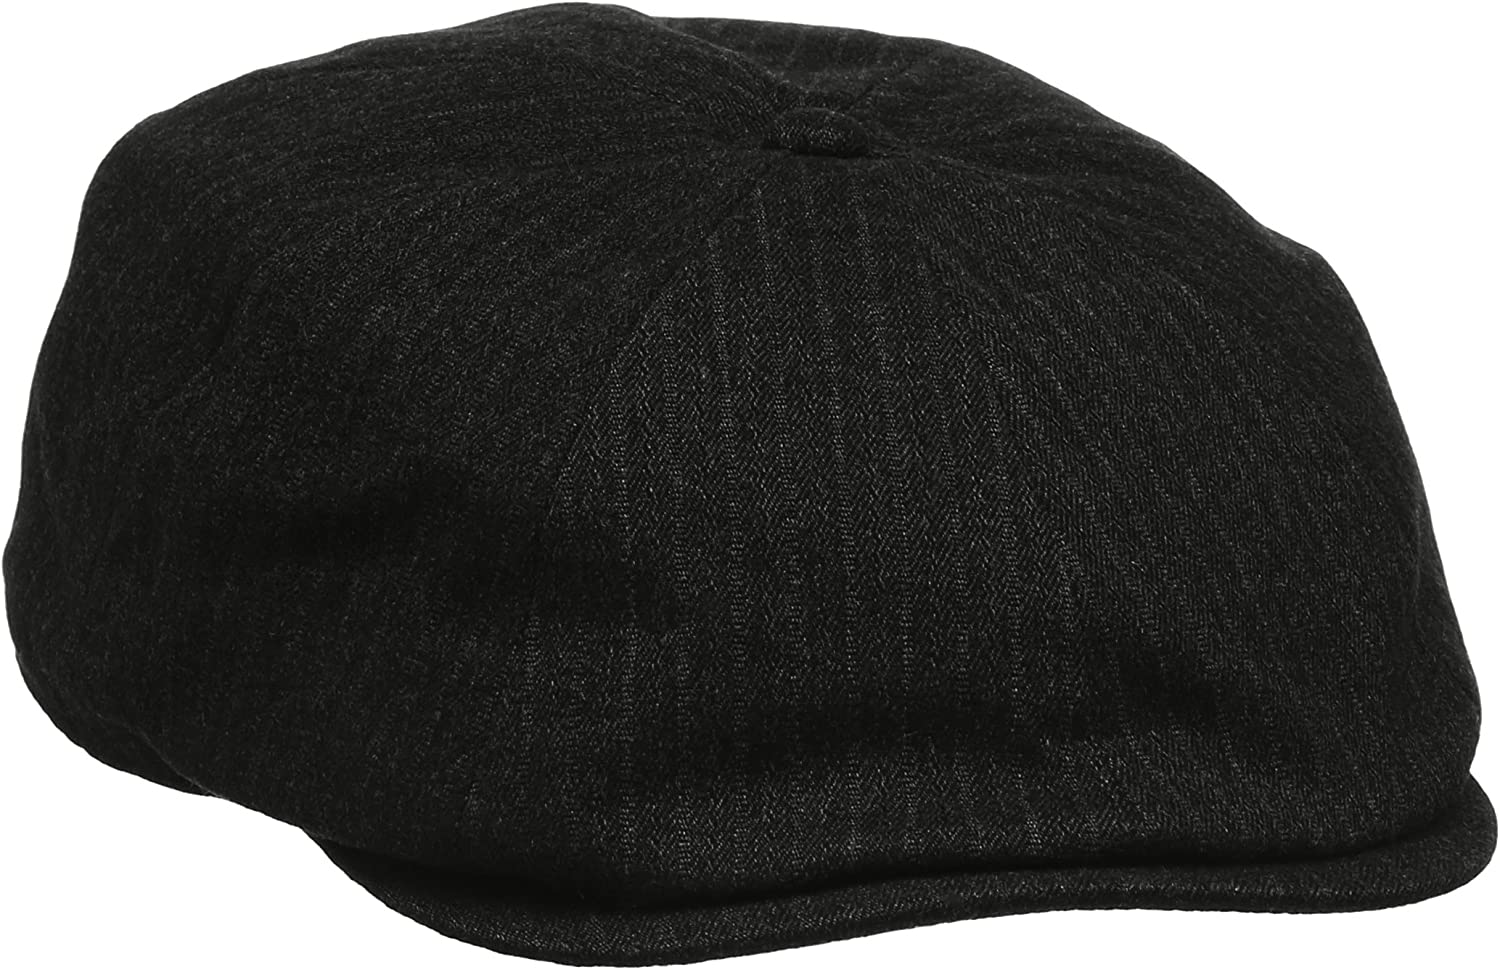 Kangol Suited Ripley Gorra, Gris (Dk Flannel), Small para Hombre ...